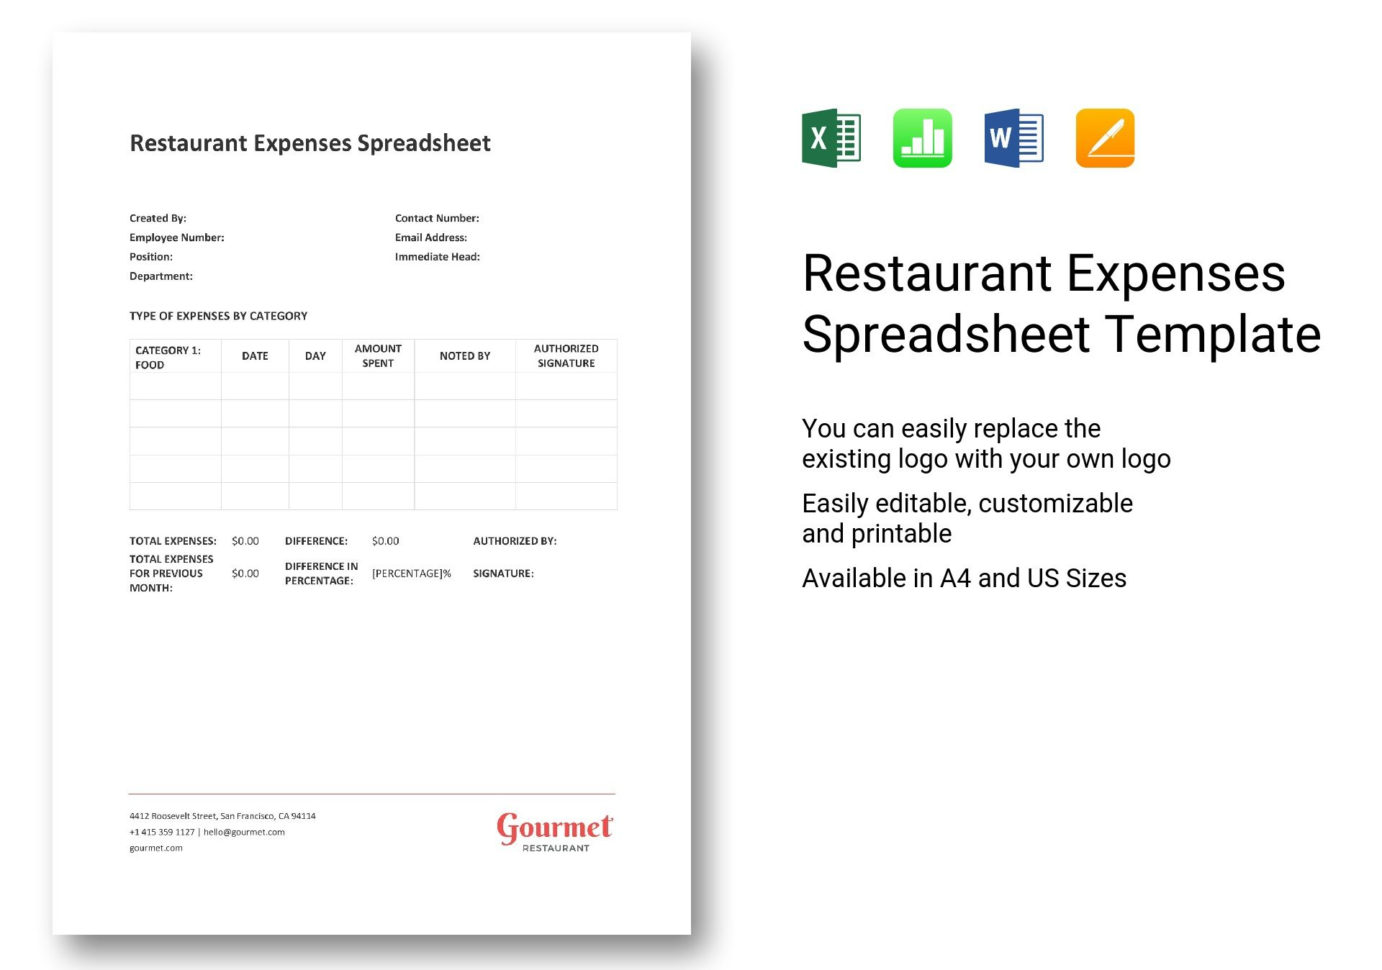 Restaurant Expenses Spreadsheet Intended For Restaurant Expenses Spreadsheet Template In Word, Excel, Apple Pages